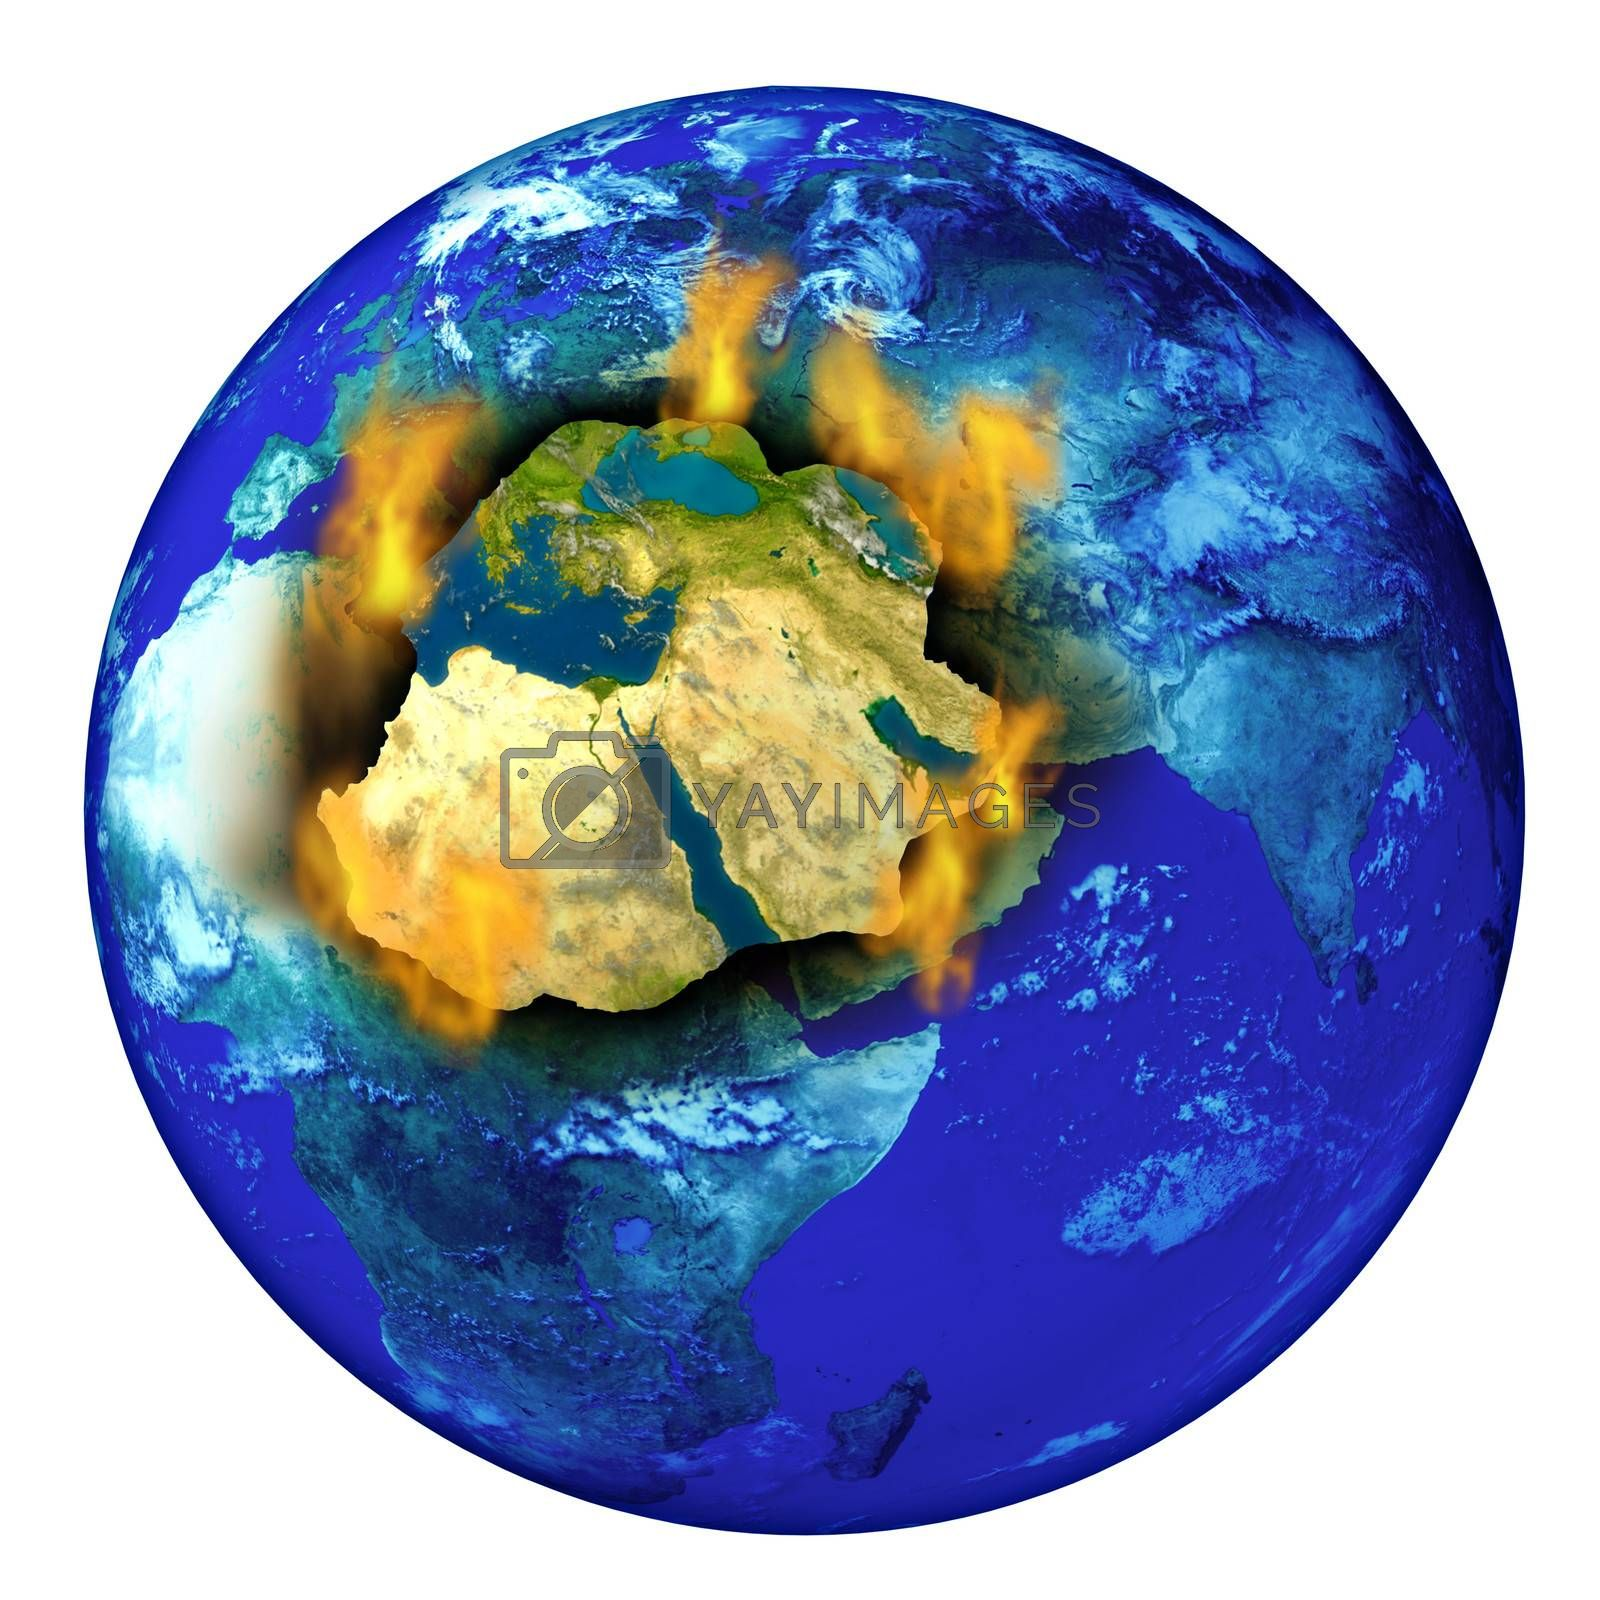 Middle East conflict with the planet earth burning with flames as a crisis concept of political crisis in countries as Syria Isreal Iran Egypt Iraq and Libya.